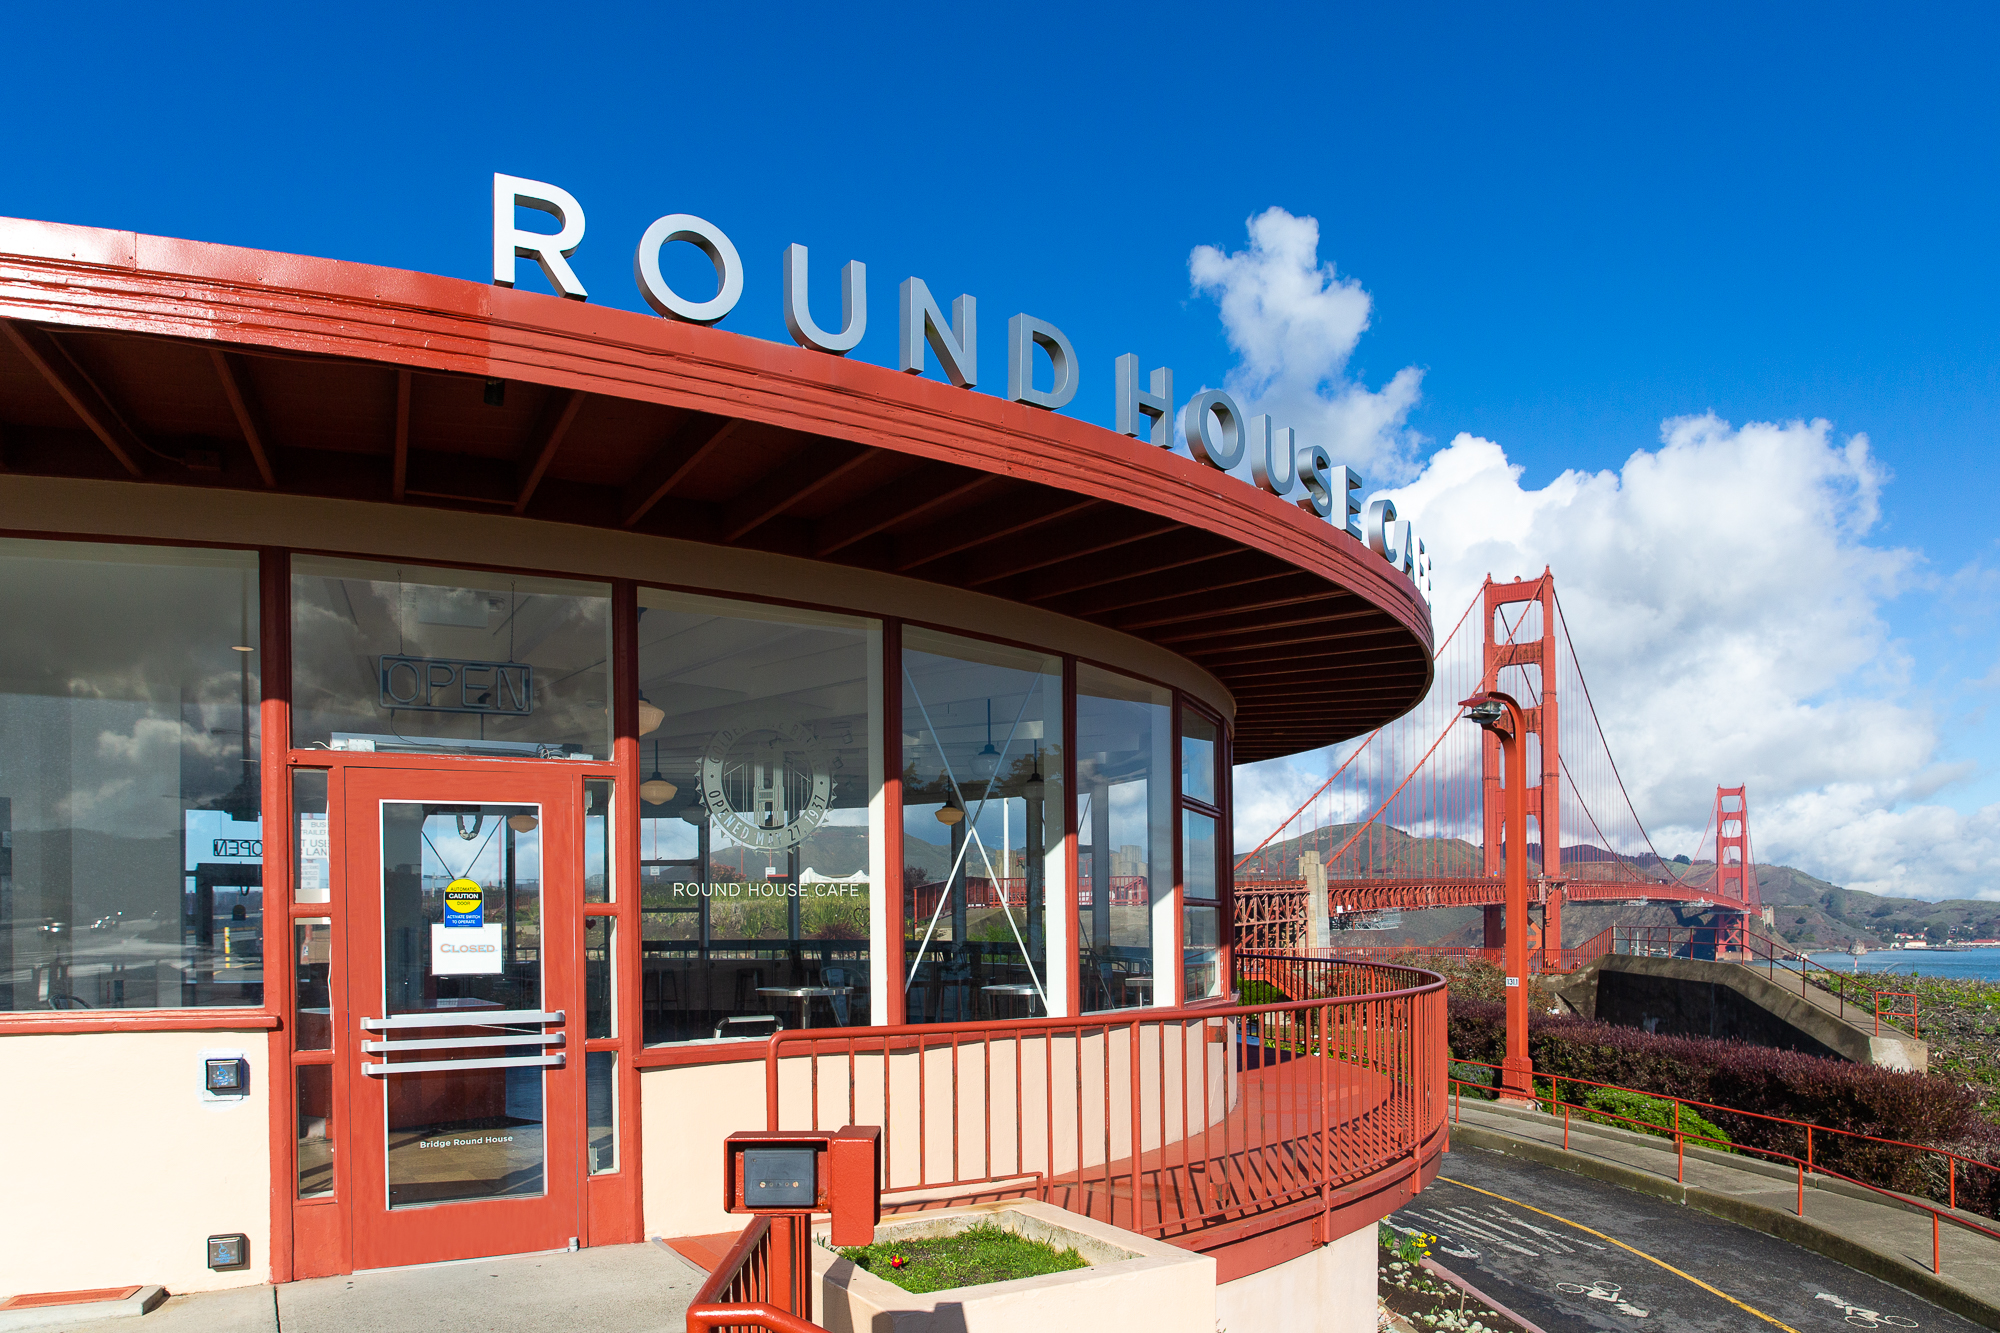 The exterior of Equator Coffees at Round House Cafe with the Golden Gate Bridge in the background